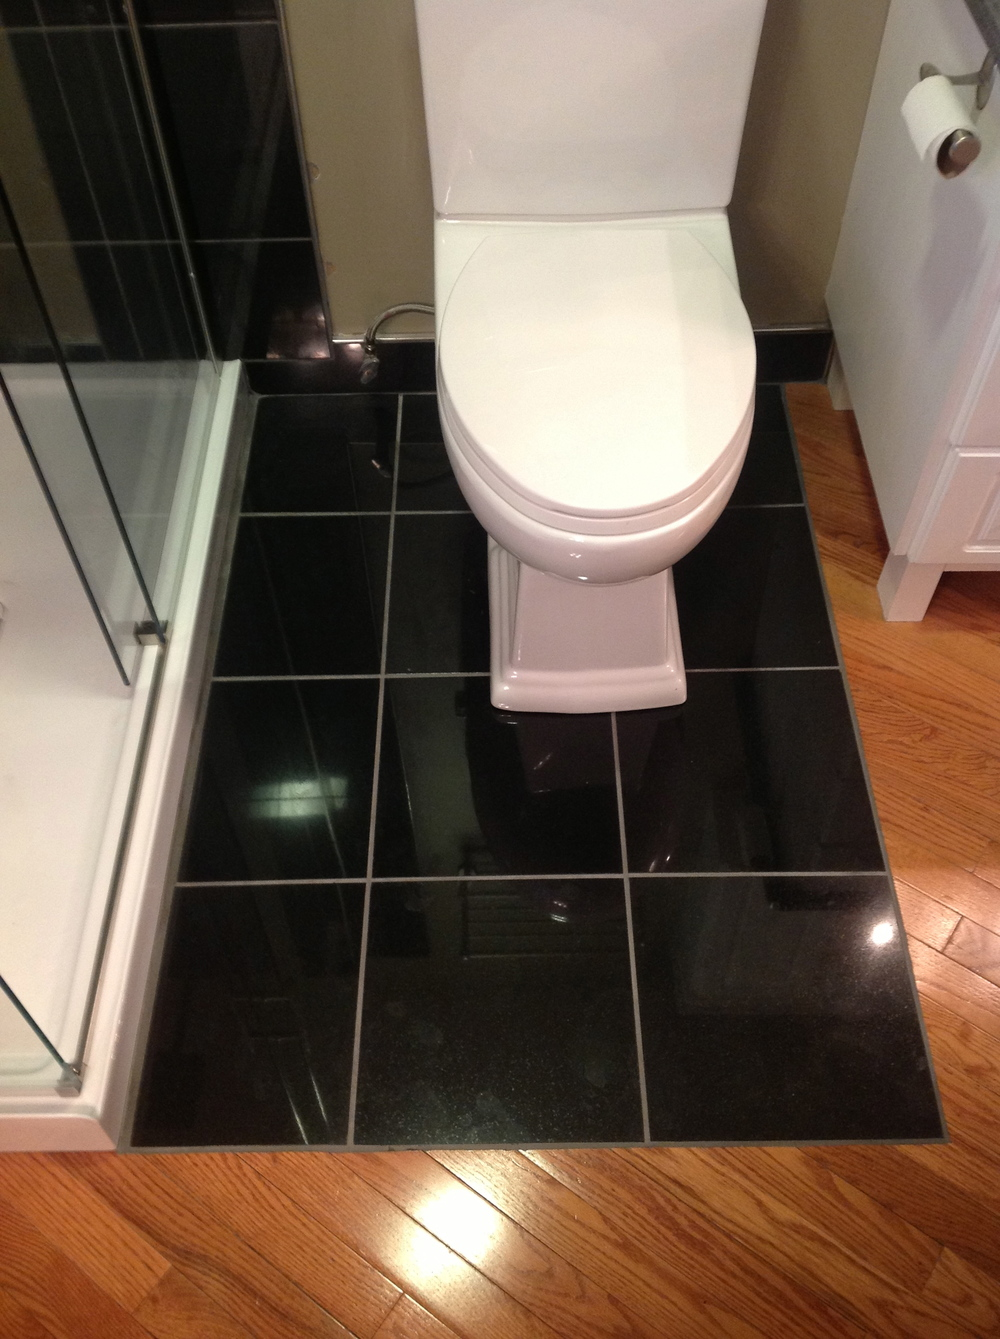 Tiled toilet floor